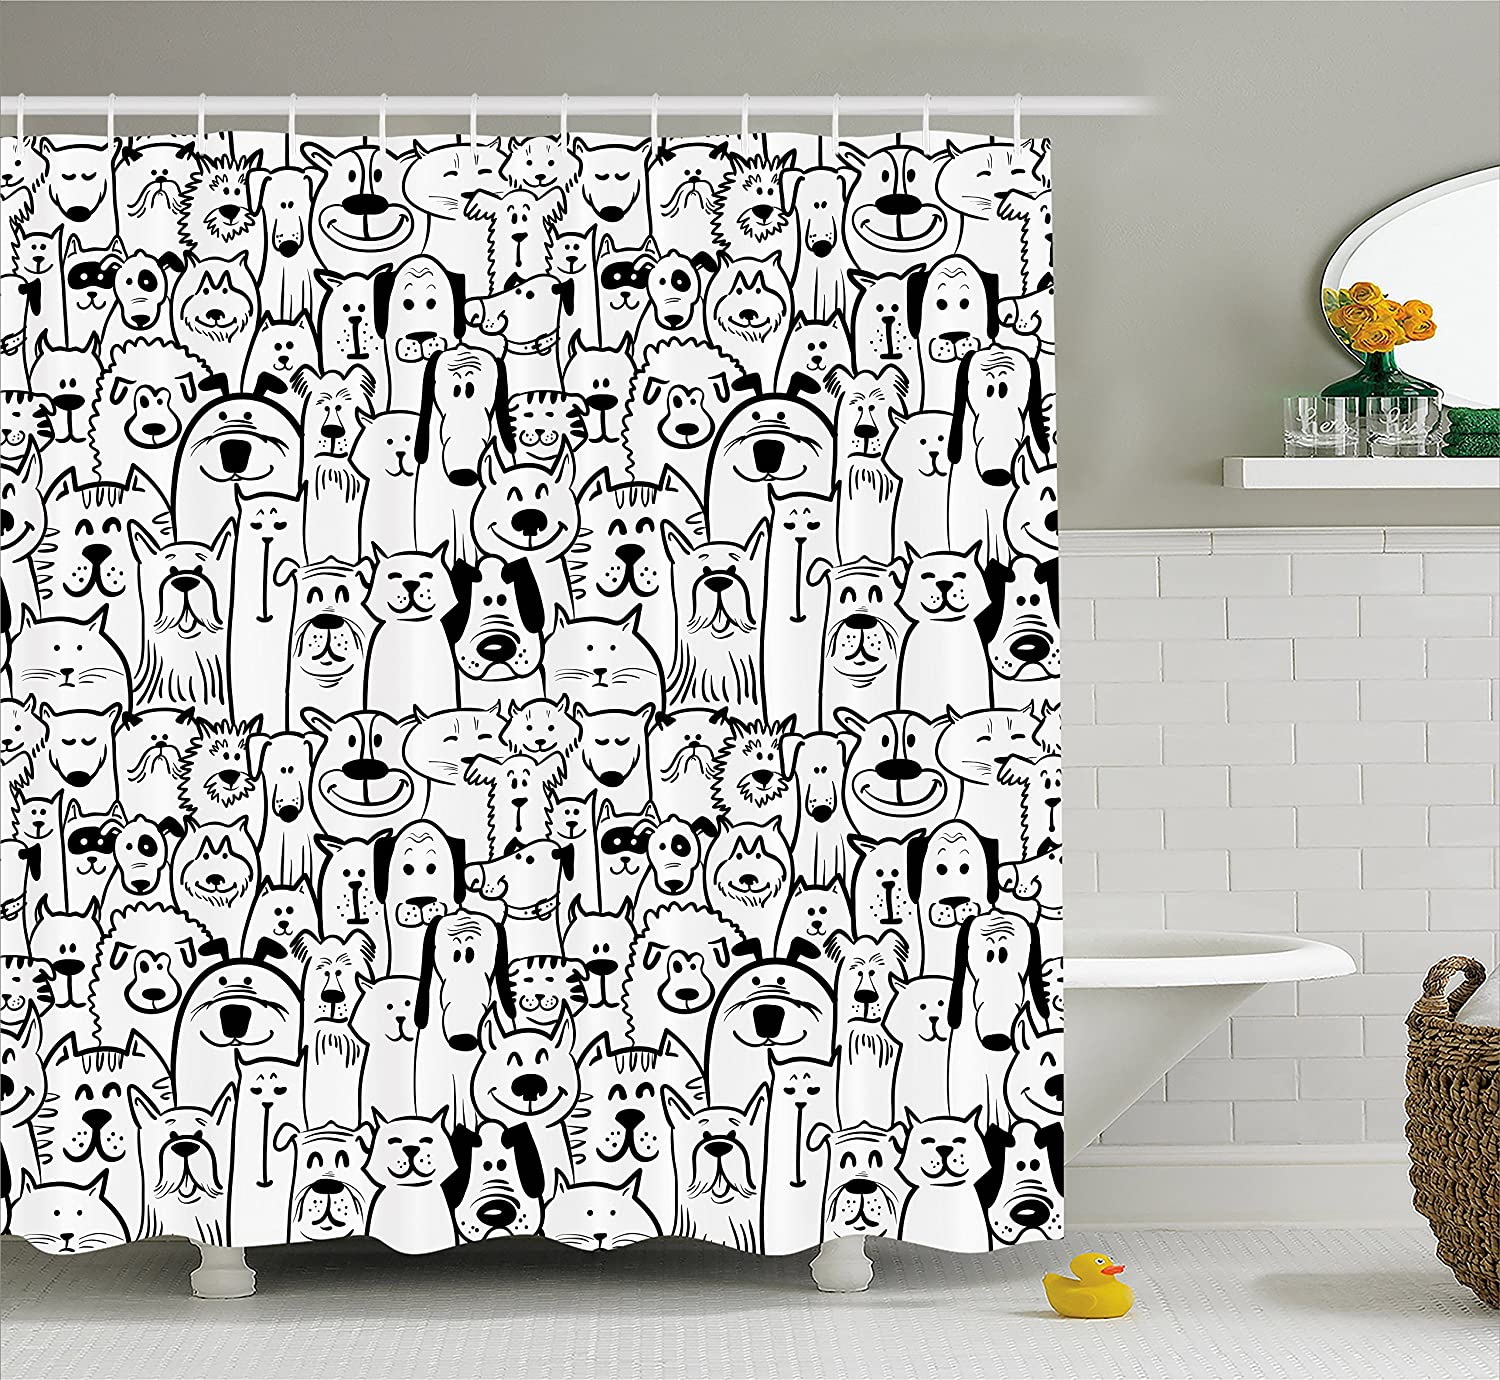 Ambesonne Doodle Shower Curtain, Collection of Dogs and Cats Cute Animals Fun Happy Beings Cartoon Inspired Design, Fabric Bathroom Decor Set with Hooks, 70 Inches, Black White